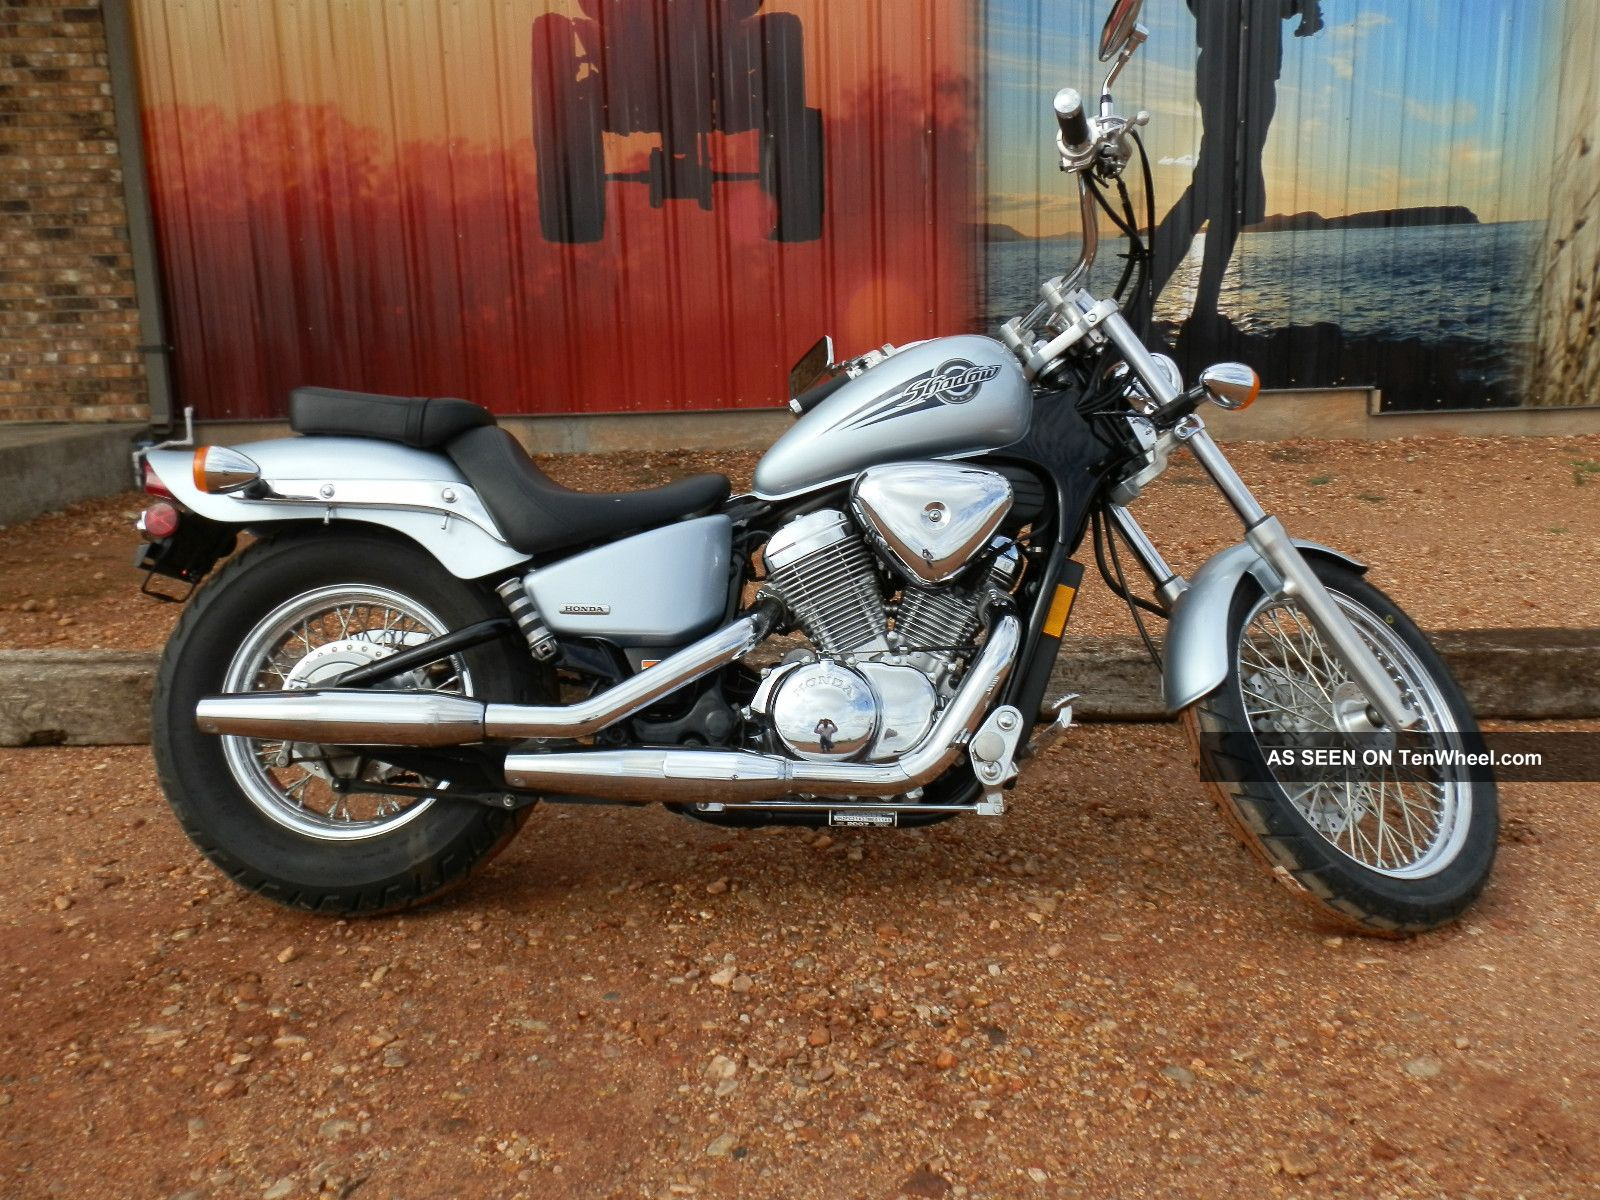 2007 Honda Shadow Vlx600 Shadow photo